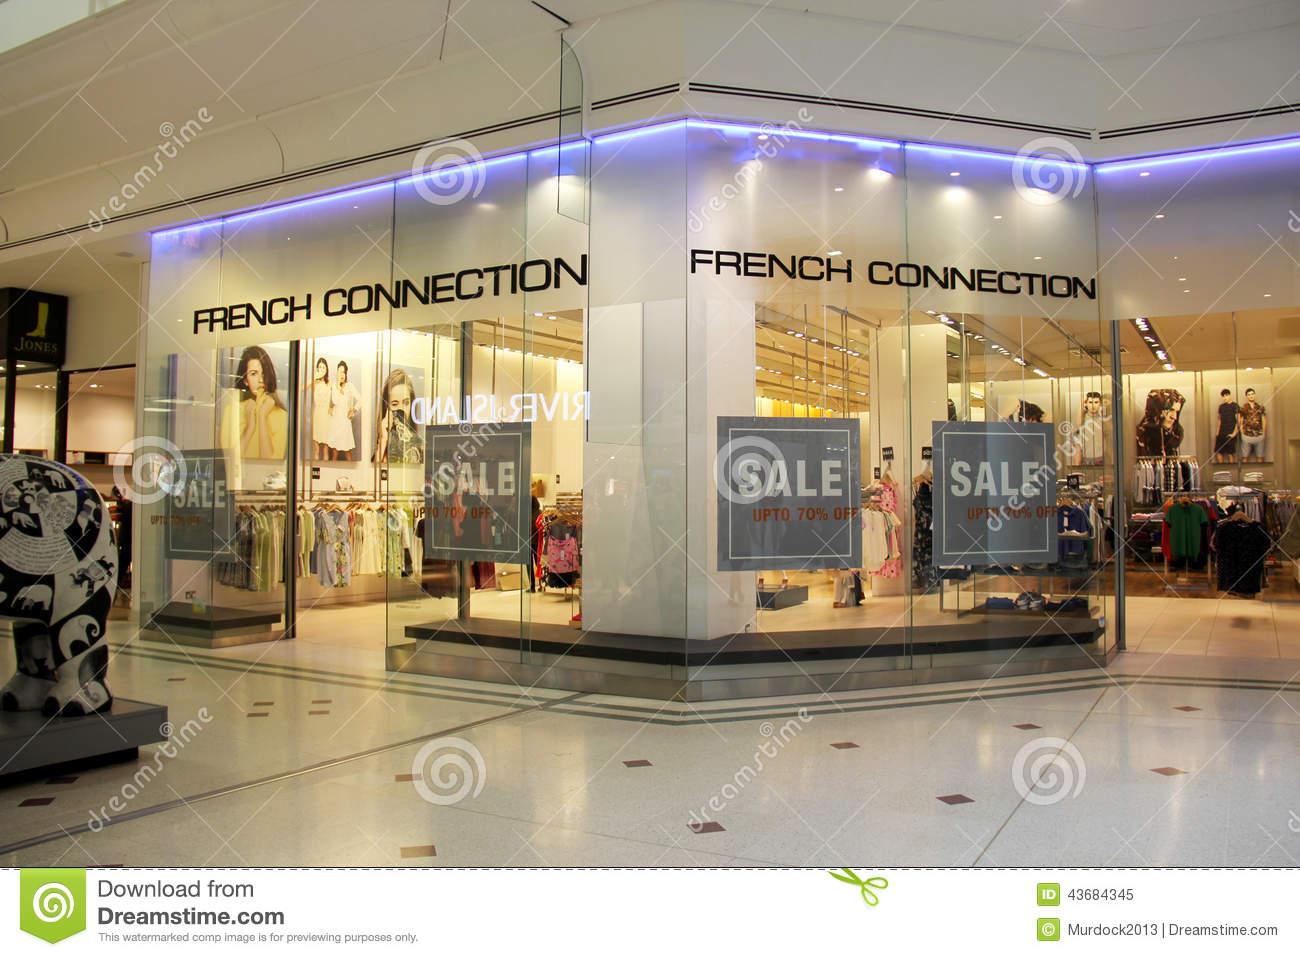 14cb709bf15 London, England - July 12, 2014: Entrance of French Connection Store in  Blue Water shopping Mall in England.